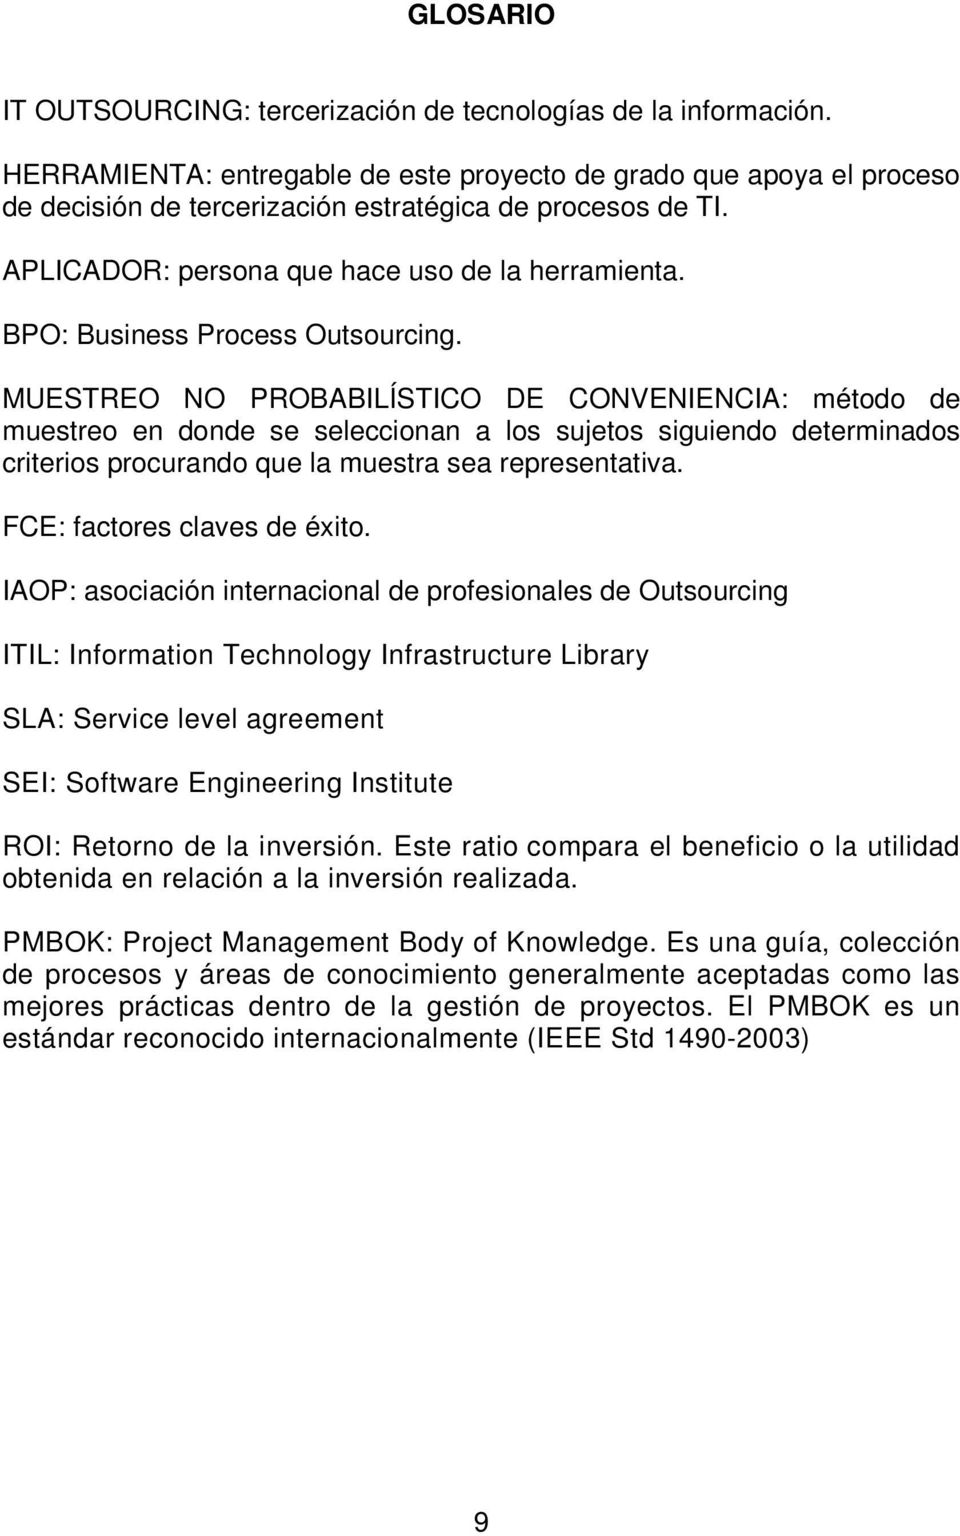 BPO: Business Process Outsourcing.